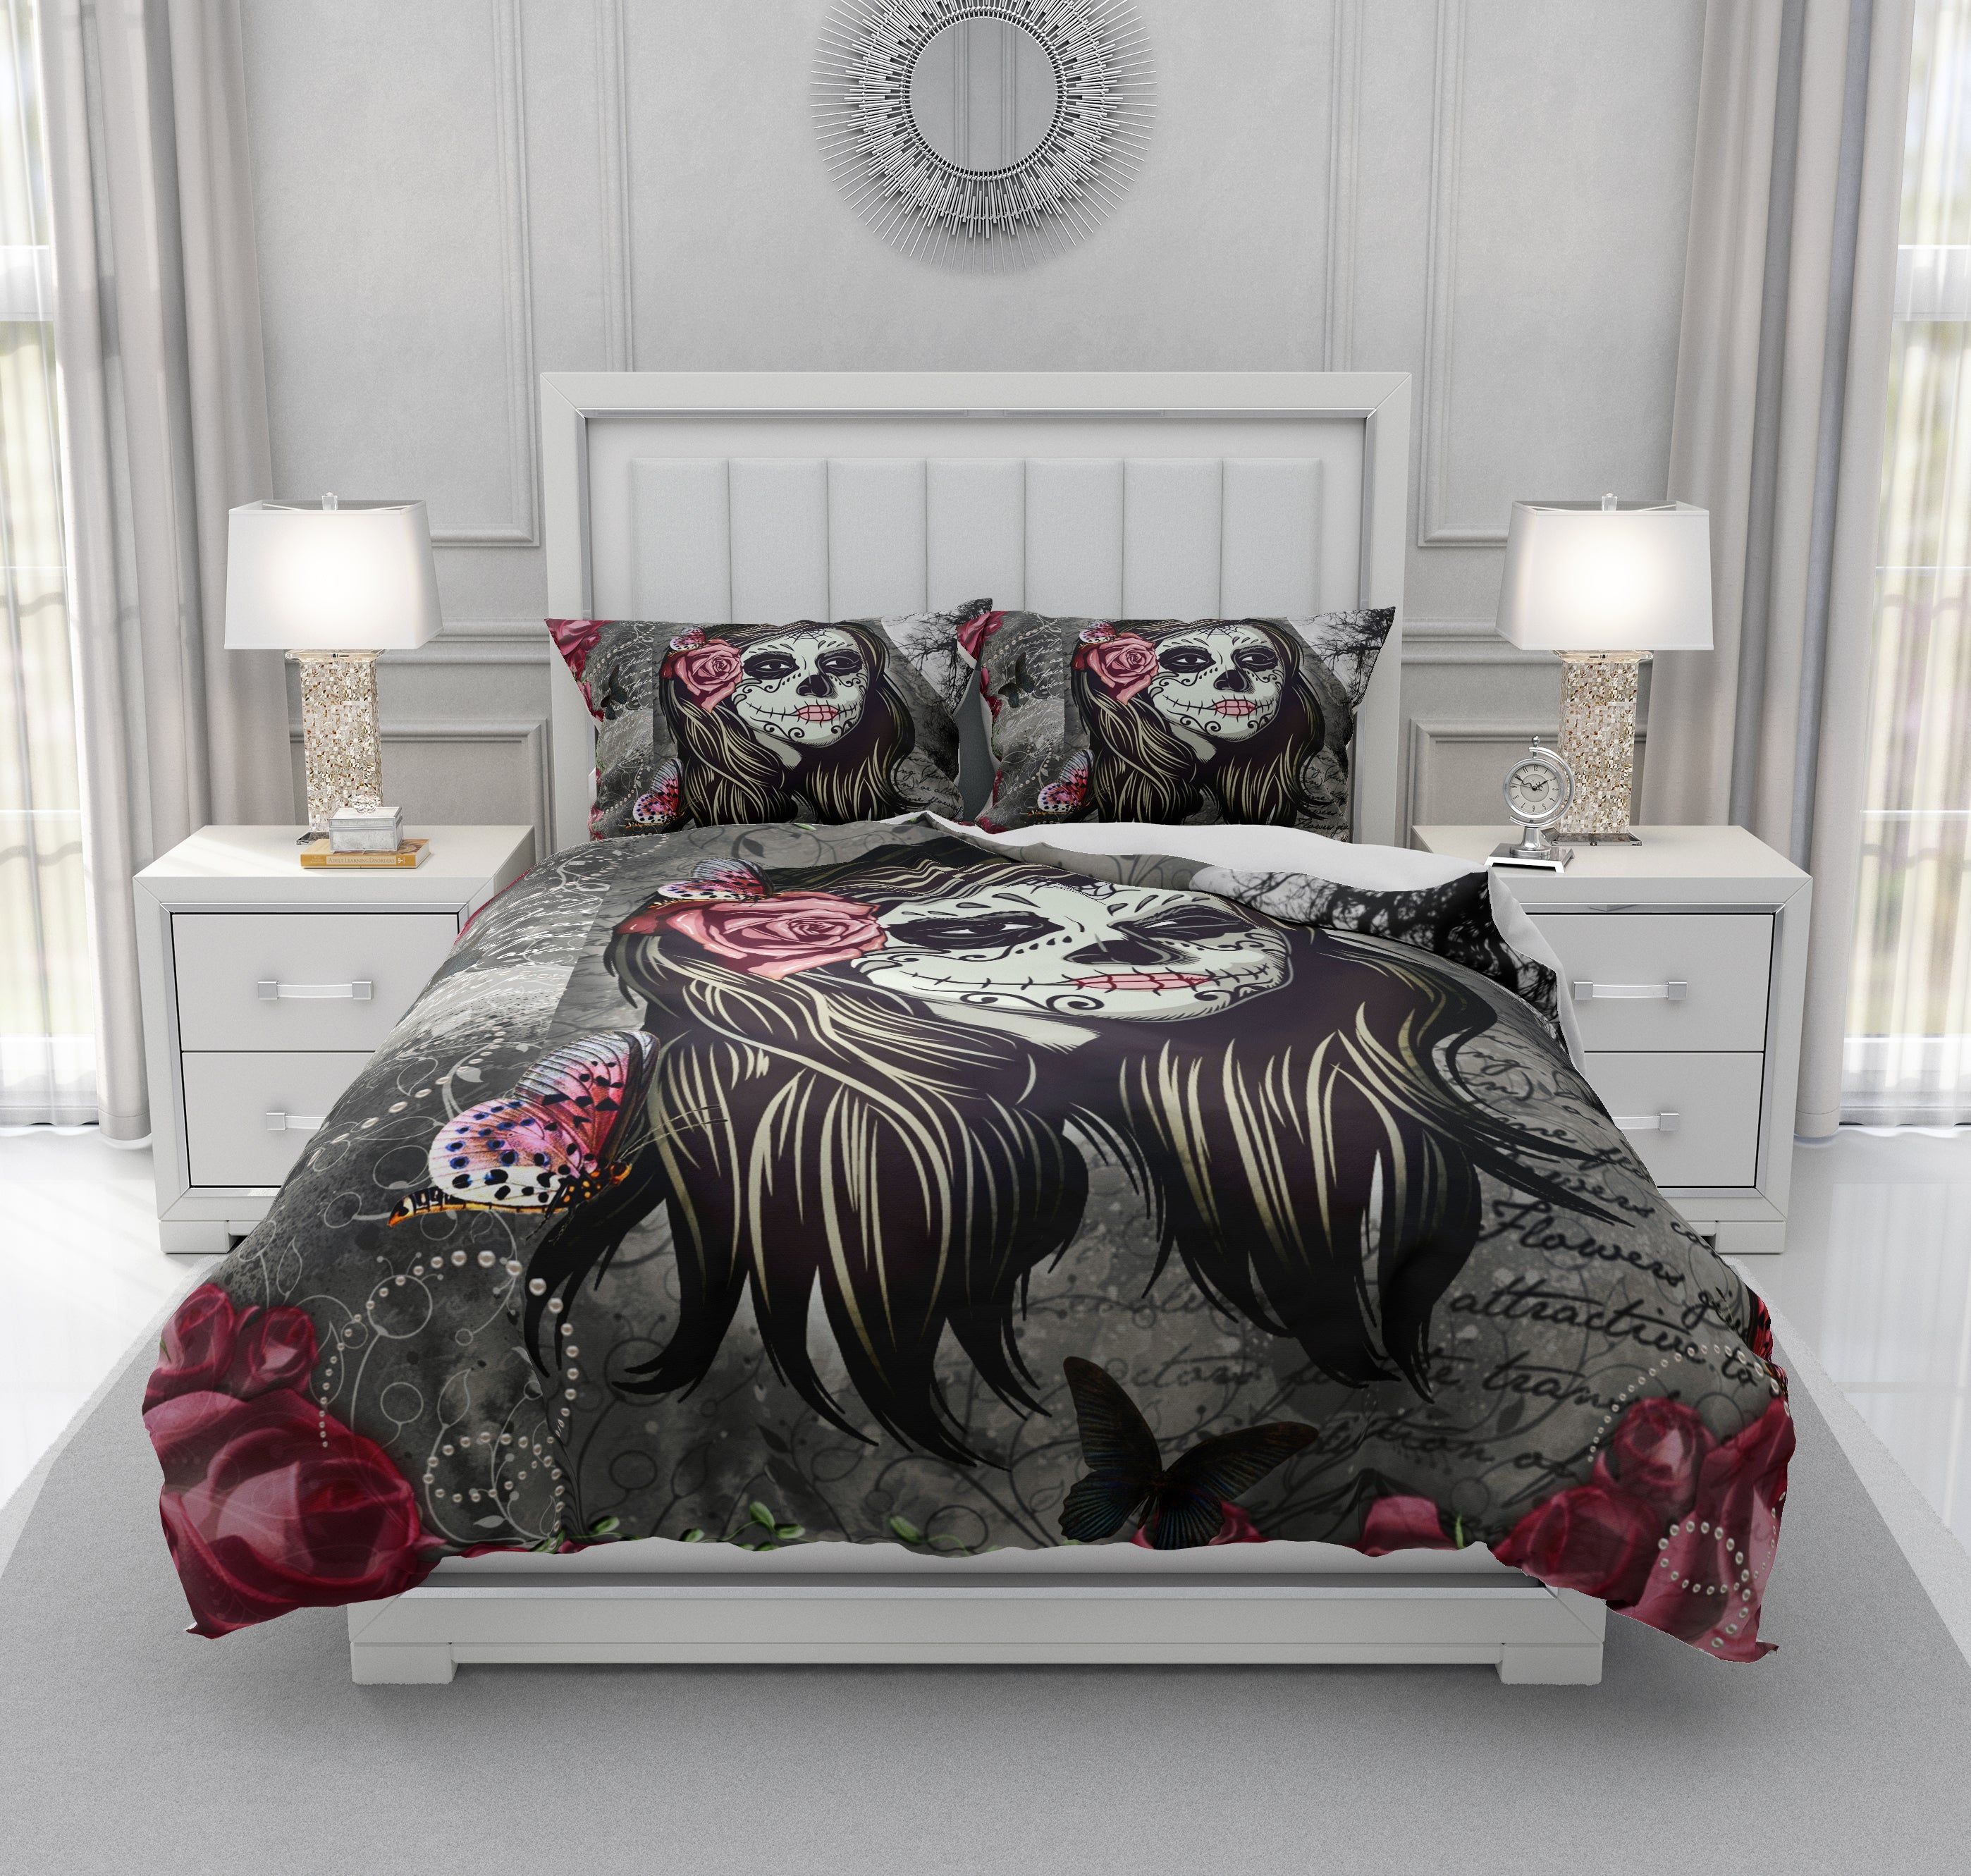 La Rosa Sugar Skull Bedding